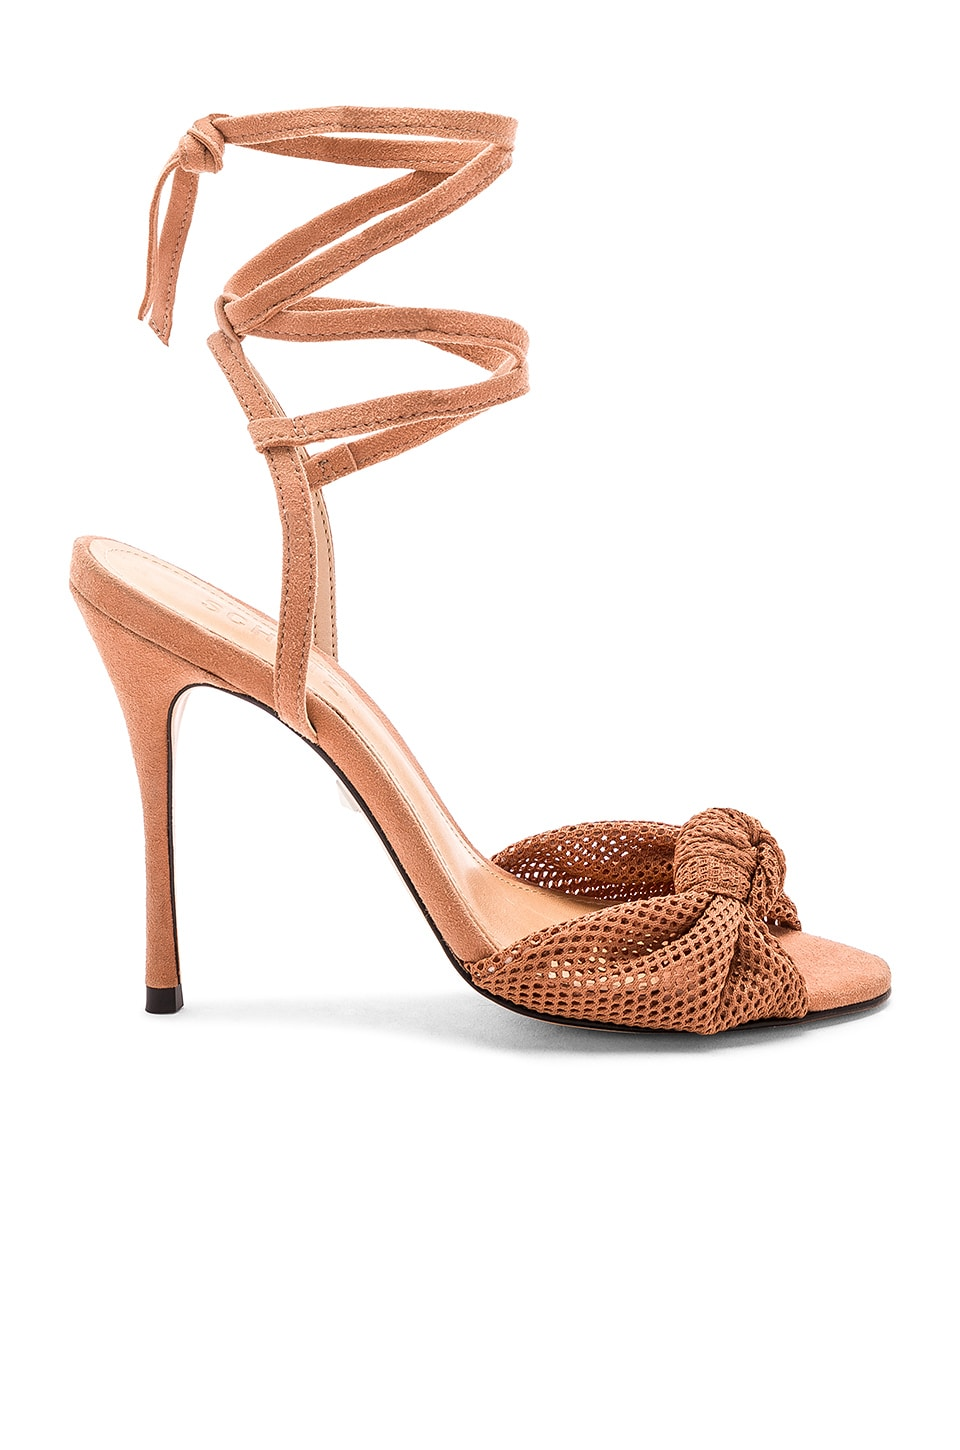 Schutz Aurore Sandal in Toasted Nut